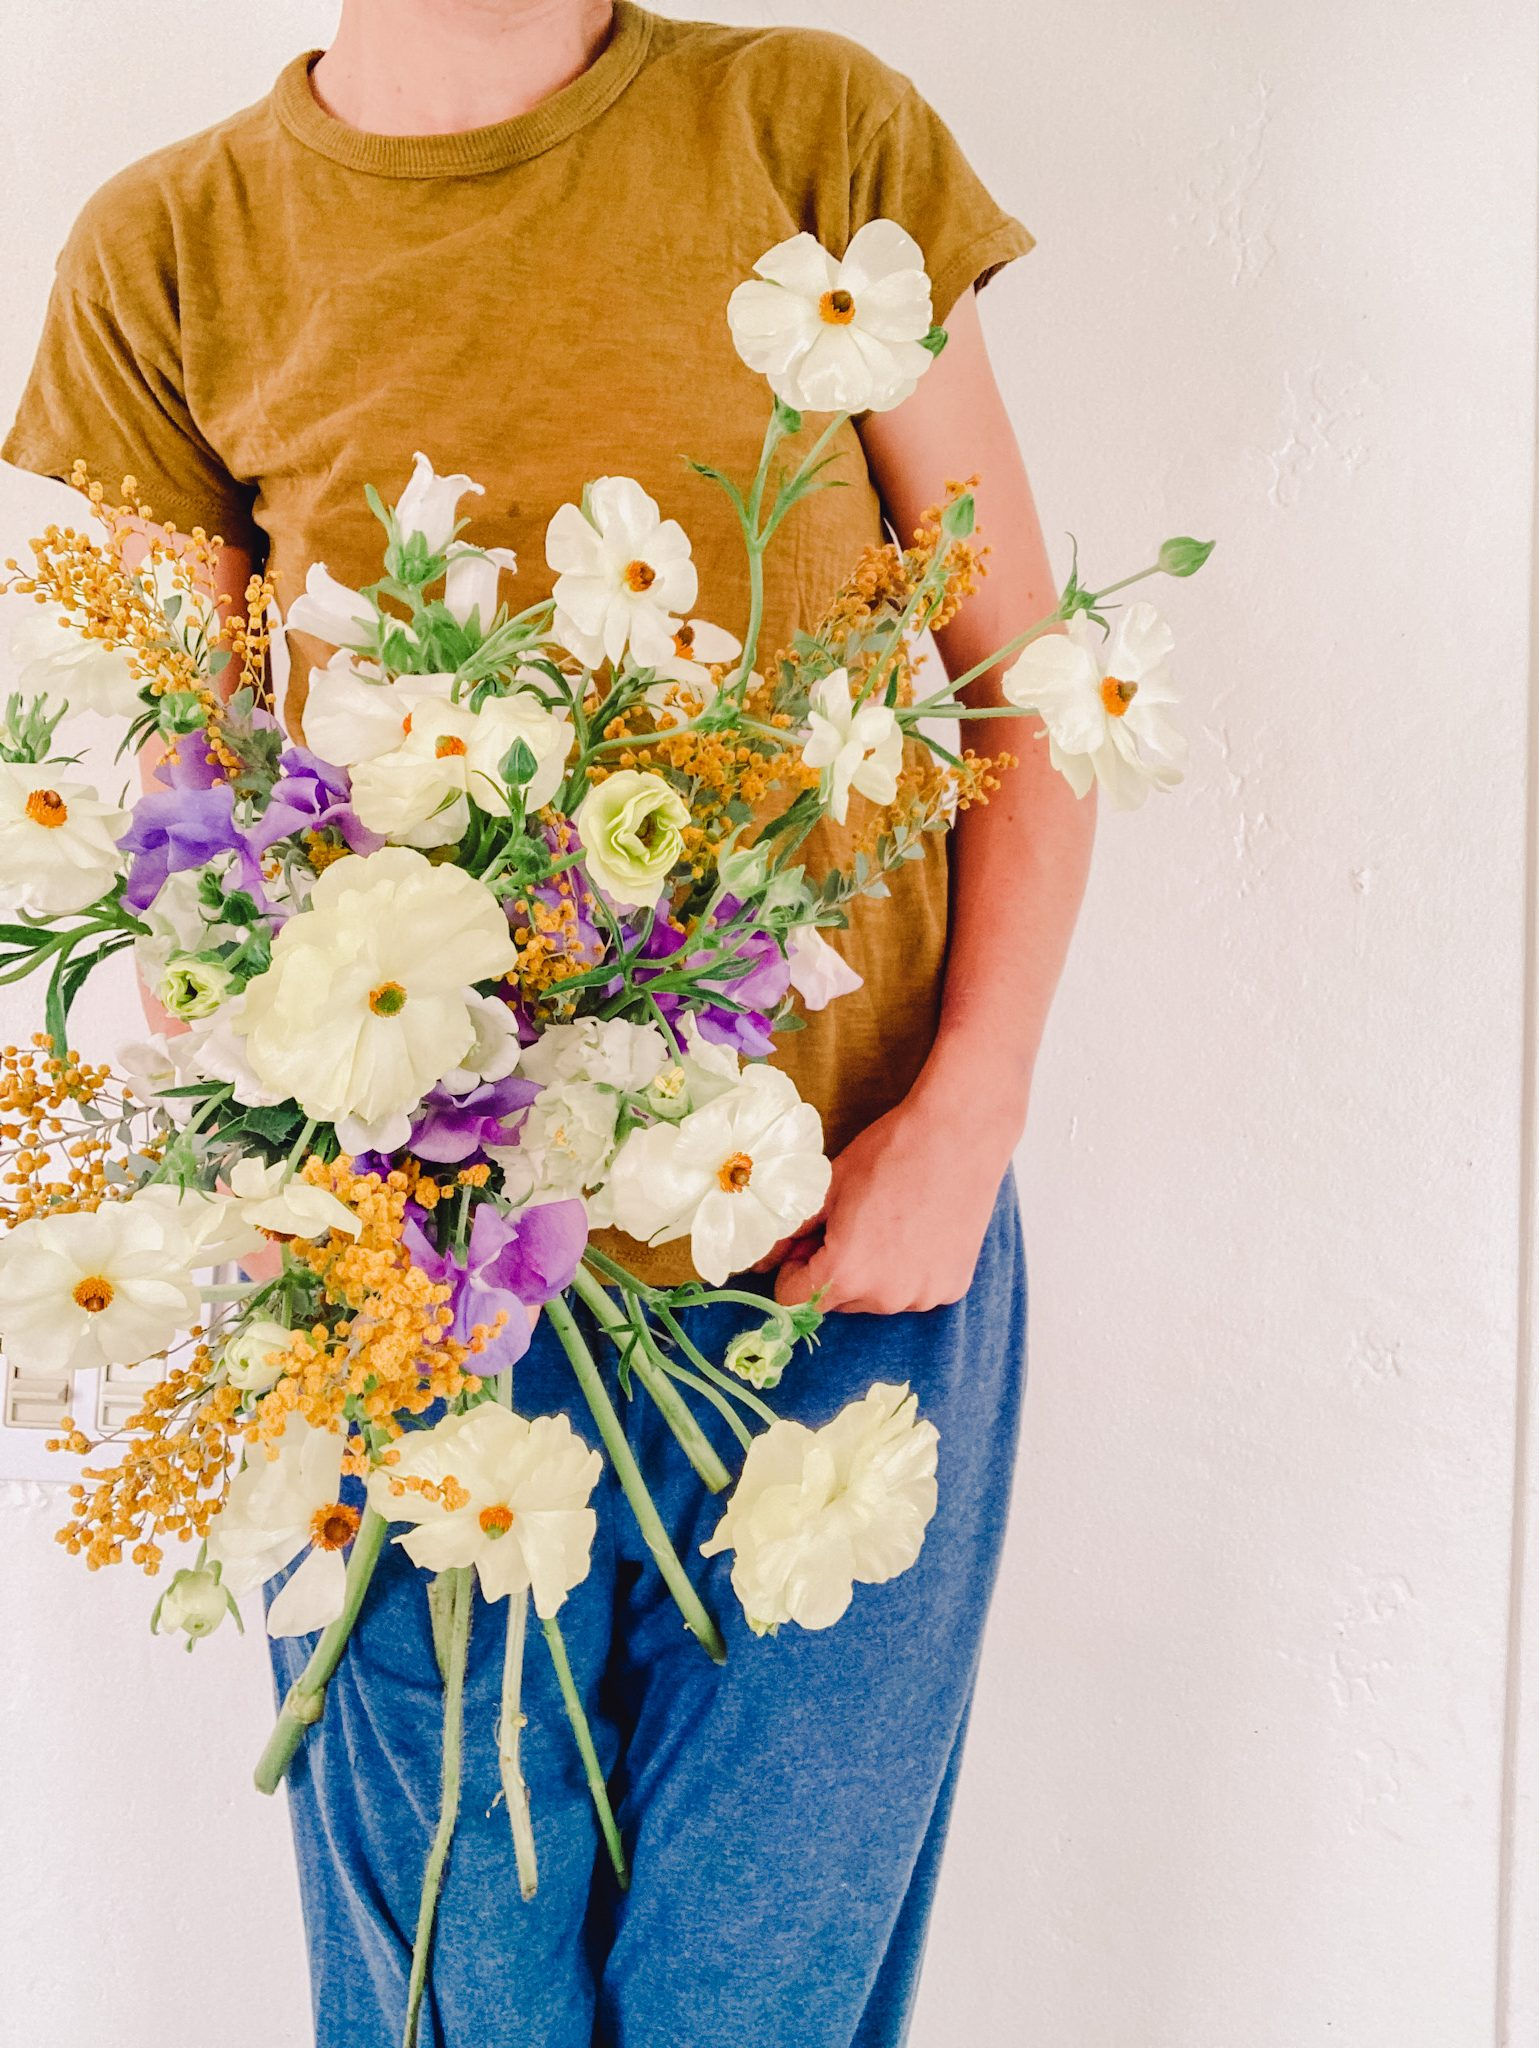 Nurture Floral Co.'s sustainable wedding flowers are designed by nature and arranged with intention. Gorgeous, nuanced color, full of soul.